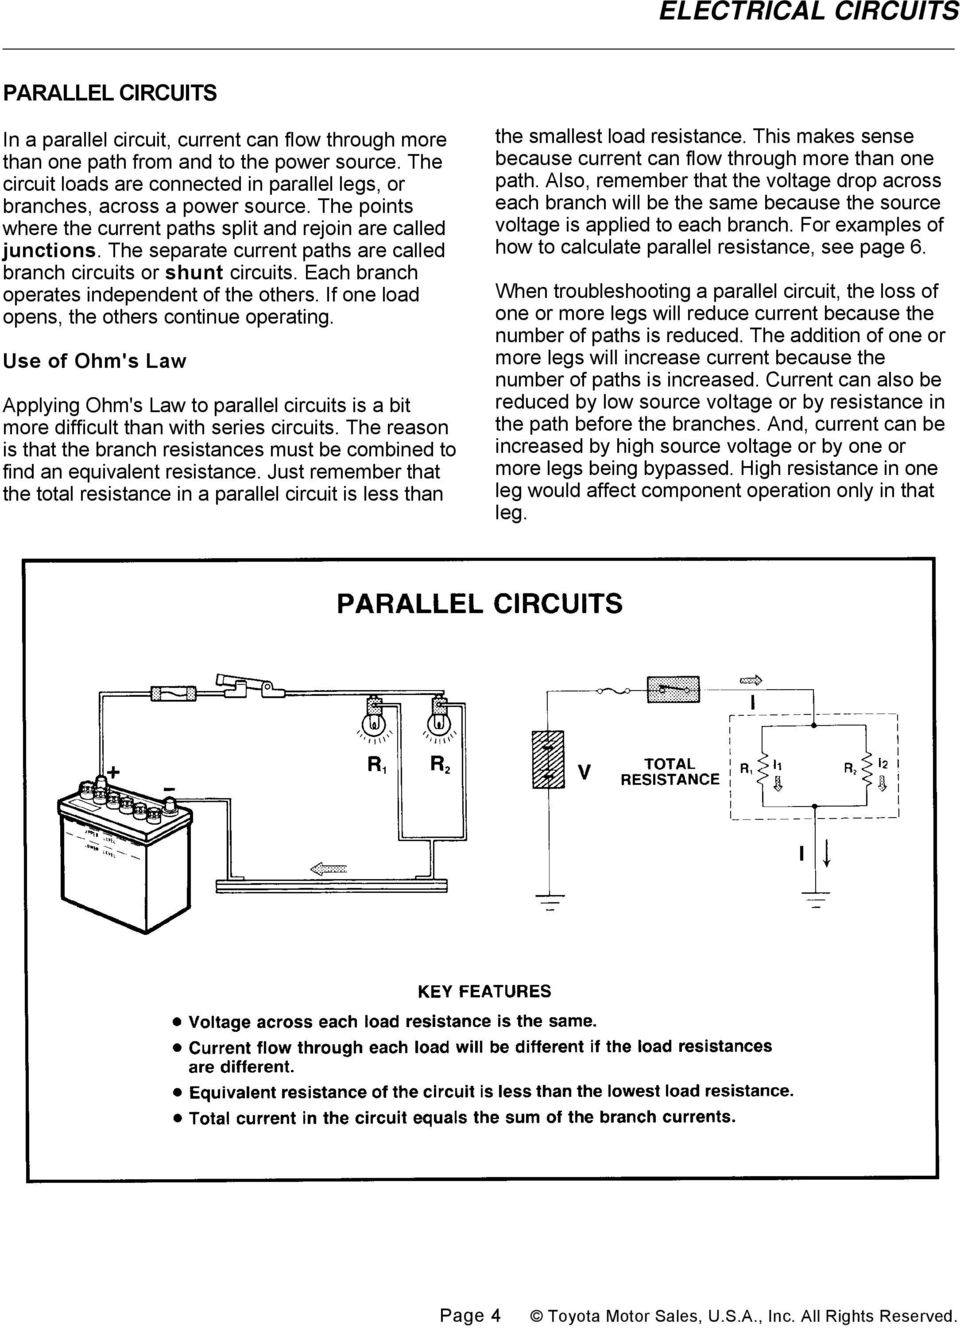 Electrical Circuits Pdf Uses Of Series If One Load Opens The Others Continue Operating Use Ohms Law Applying 5 Parallel